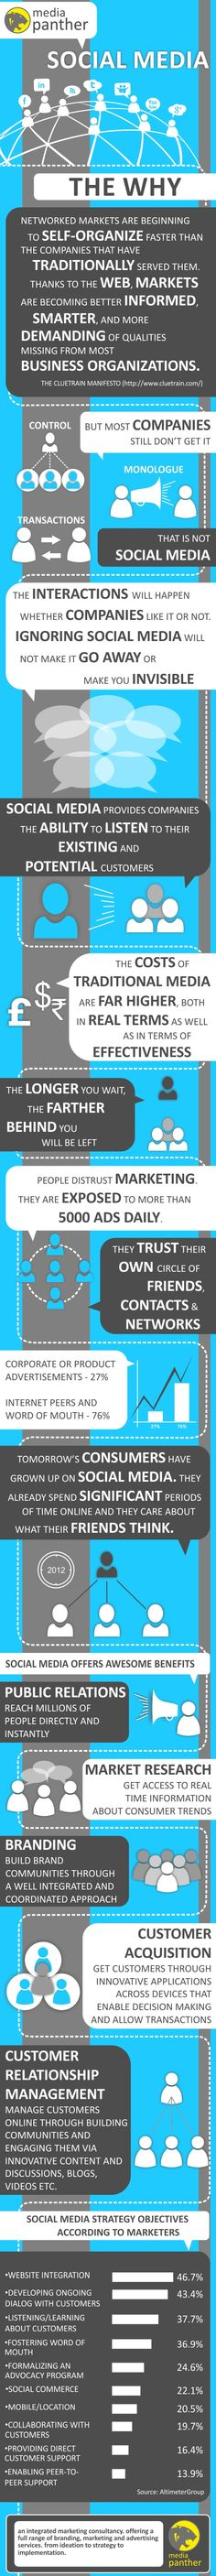 Why Companies Care | [Infographic]